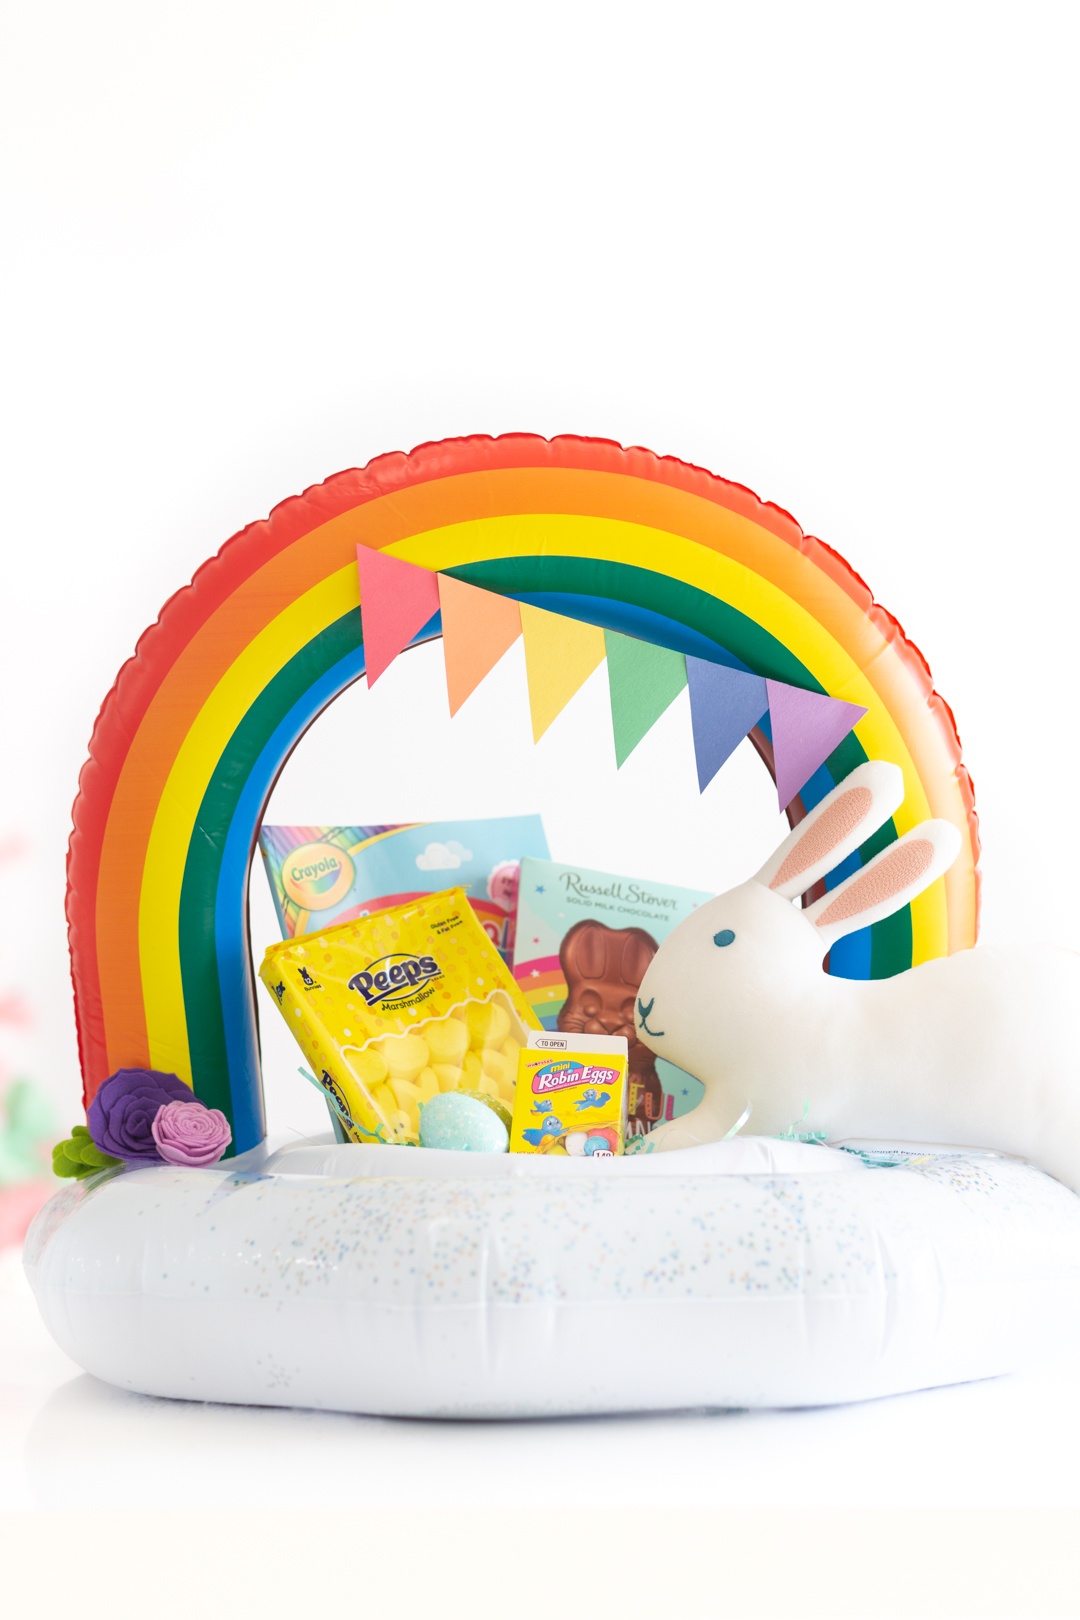 Alternate Easter Basket idea using a pool float. Cute construction paper rainbow to decorate.